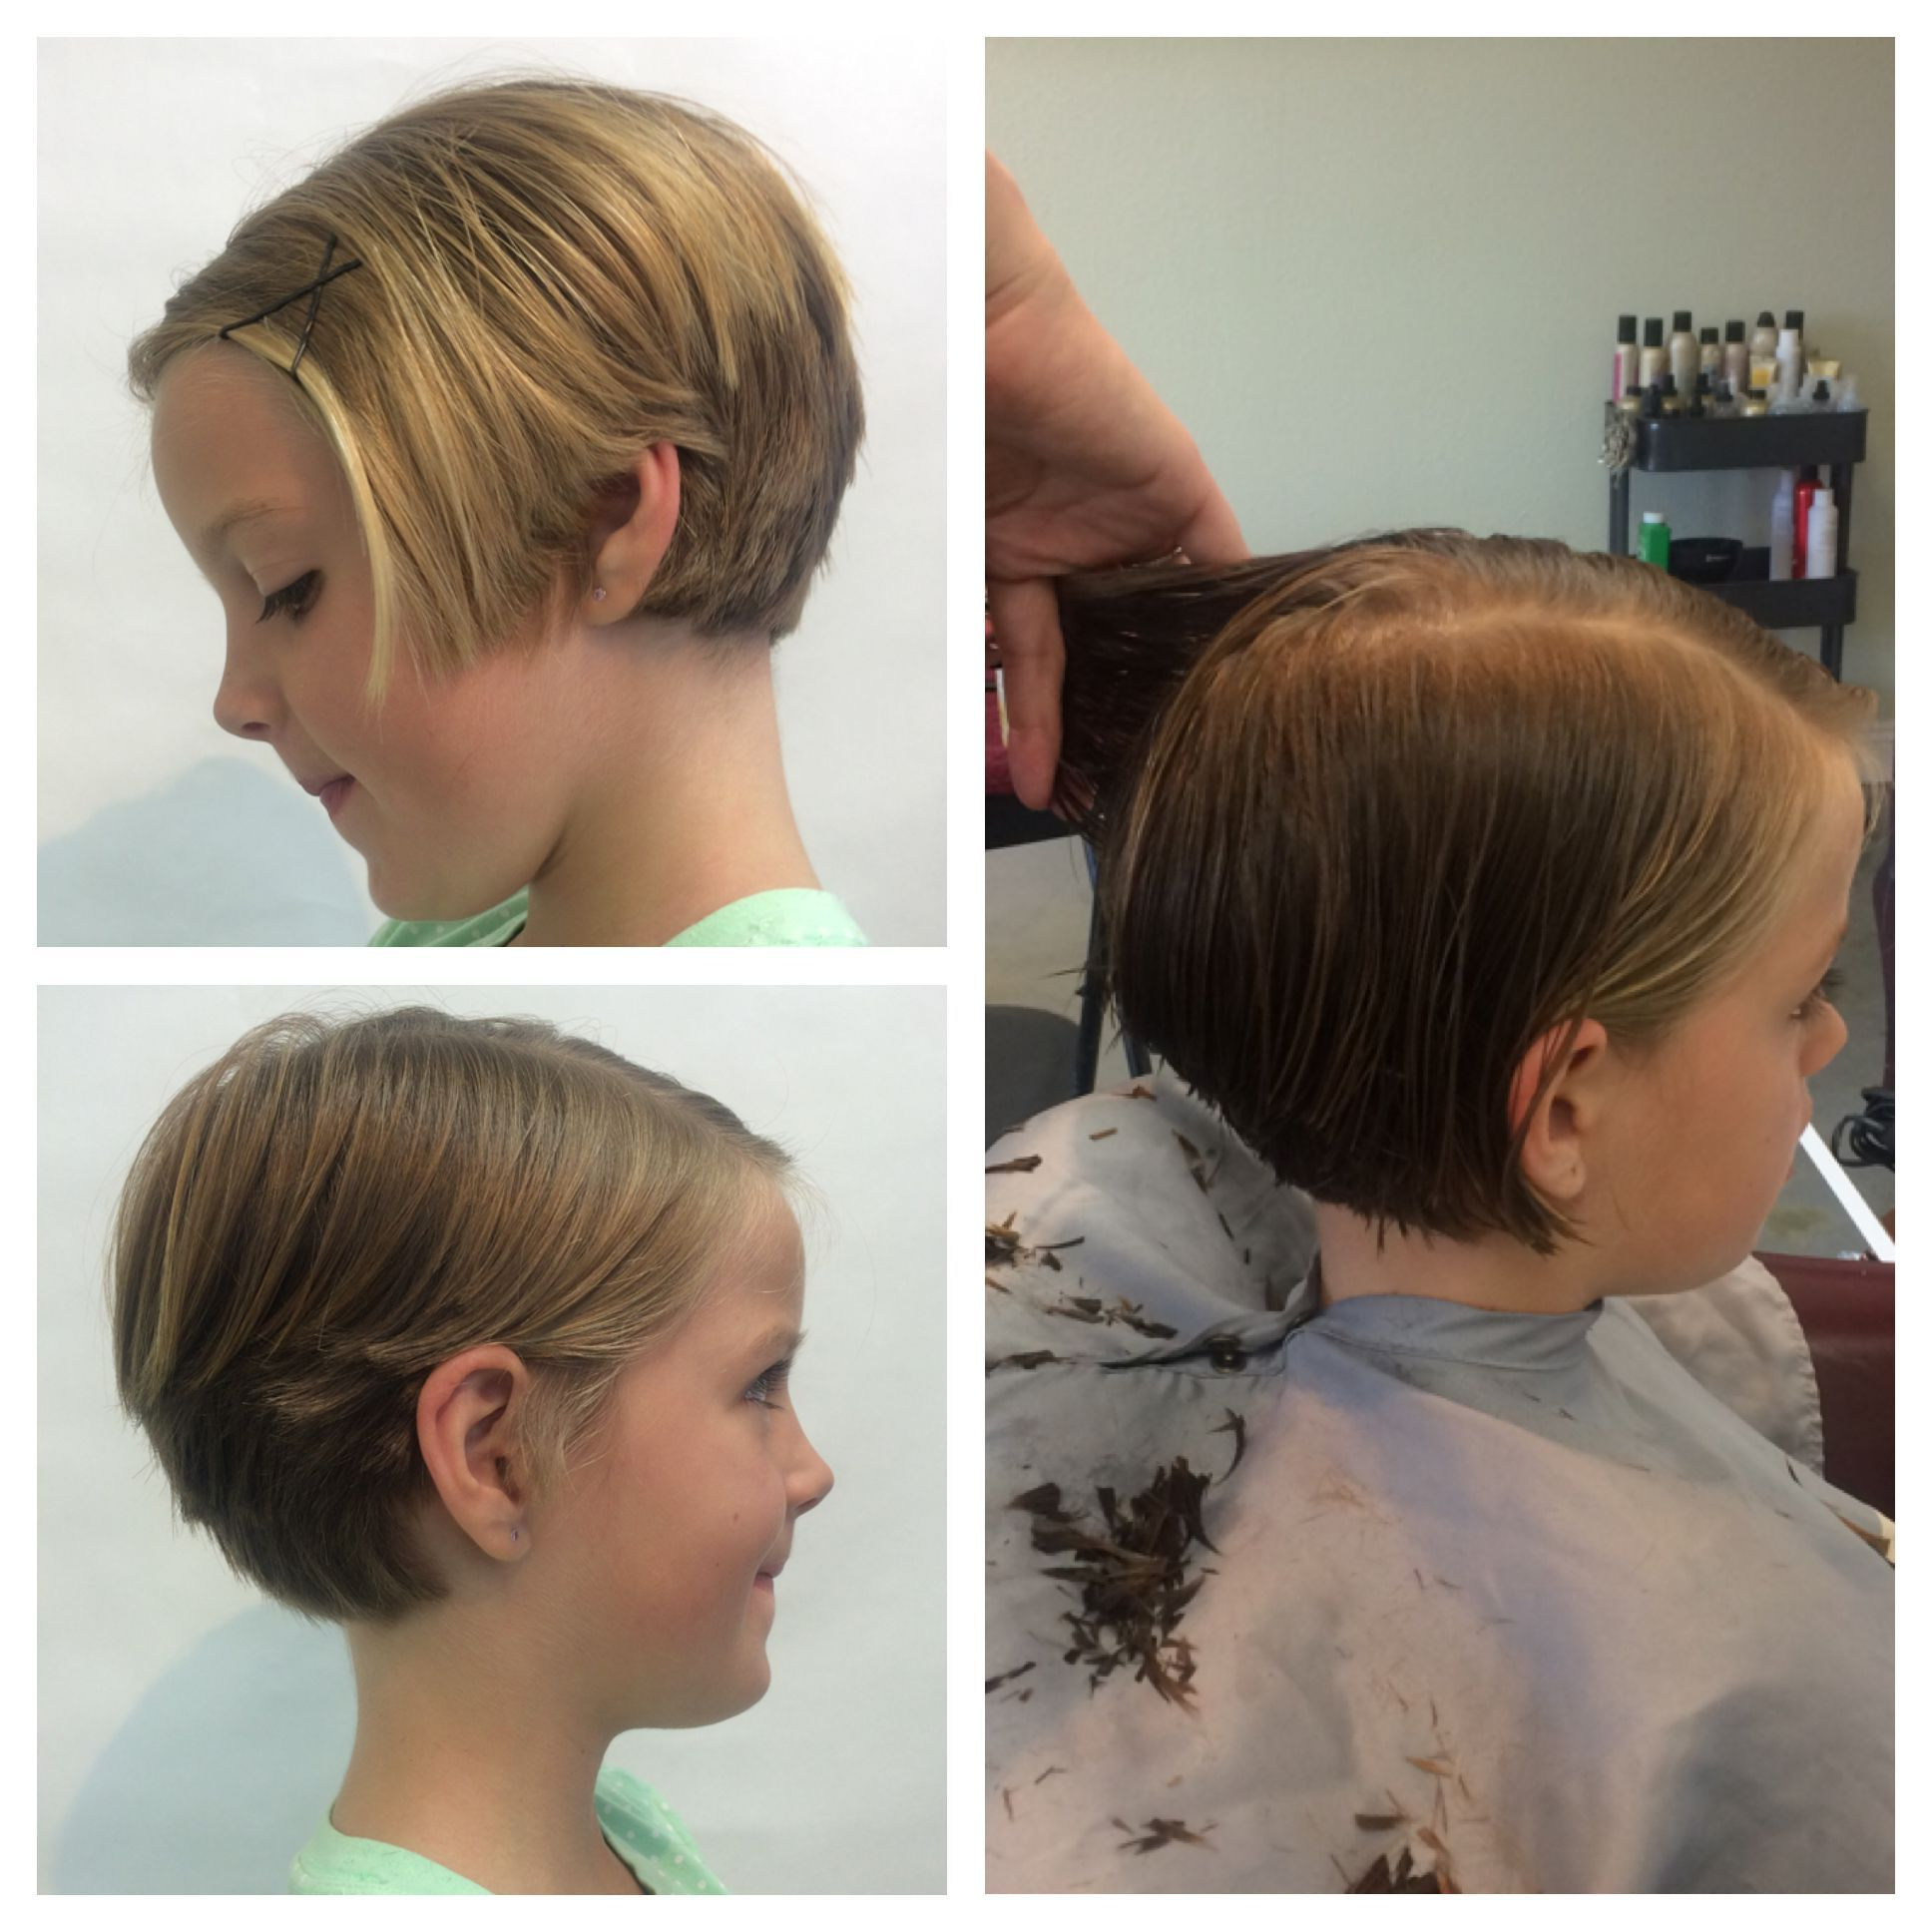 20 Cute Little Girl Pixie Haircuts Inspiration | Matsnilssonmma Pertaining To Baby Girl Short Hairstyles (View 12 of 25)